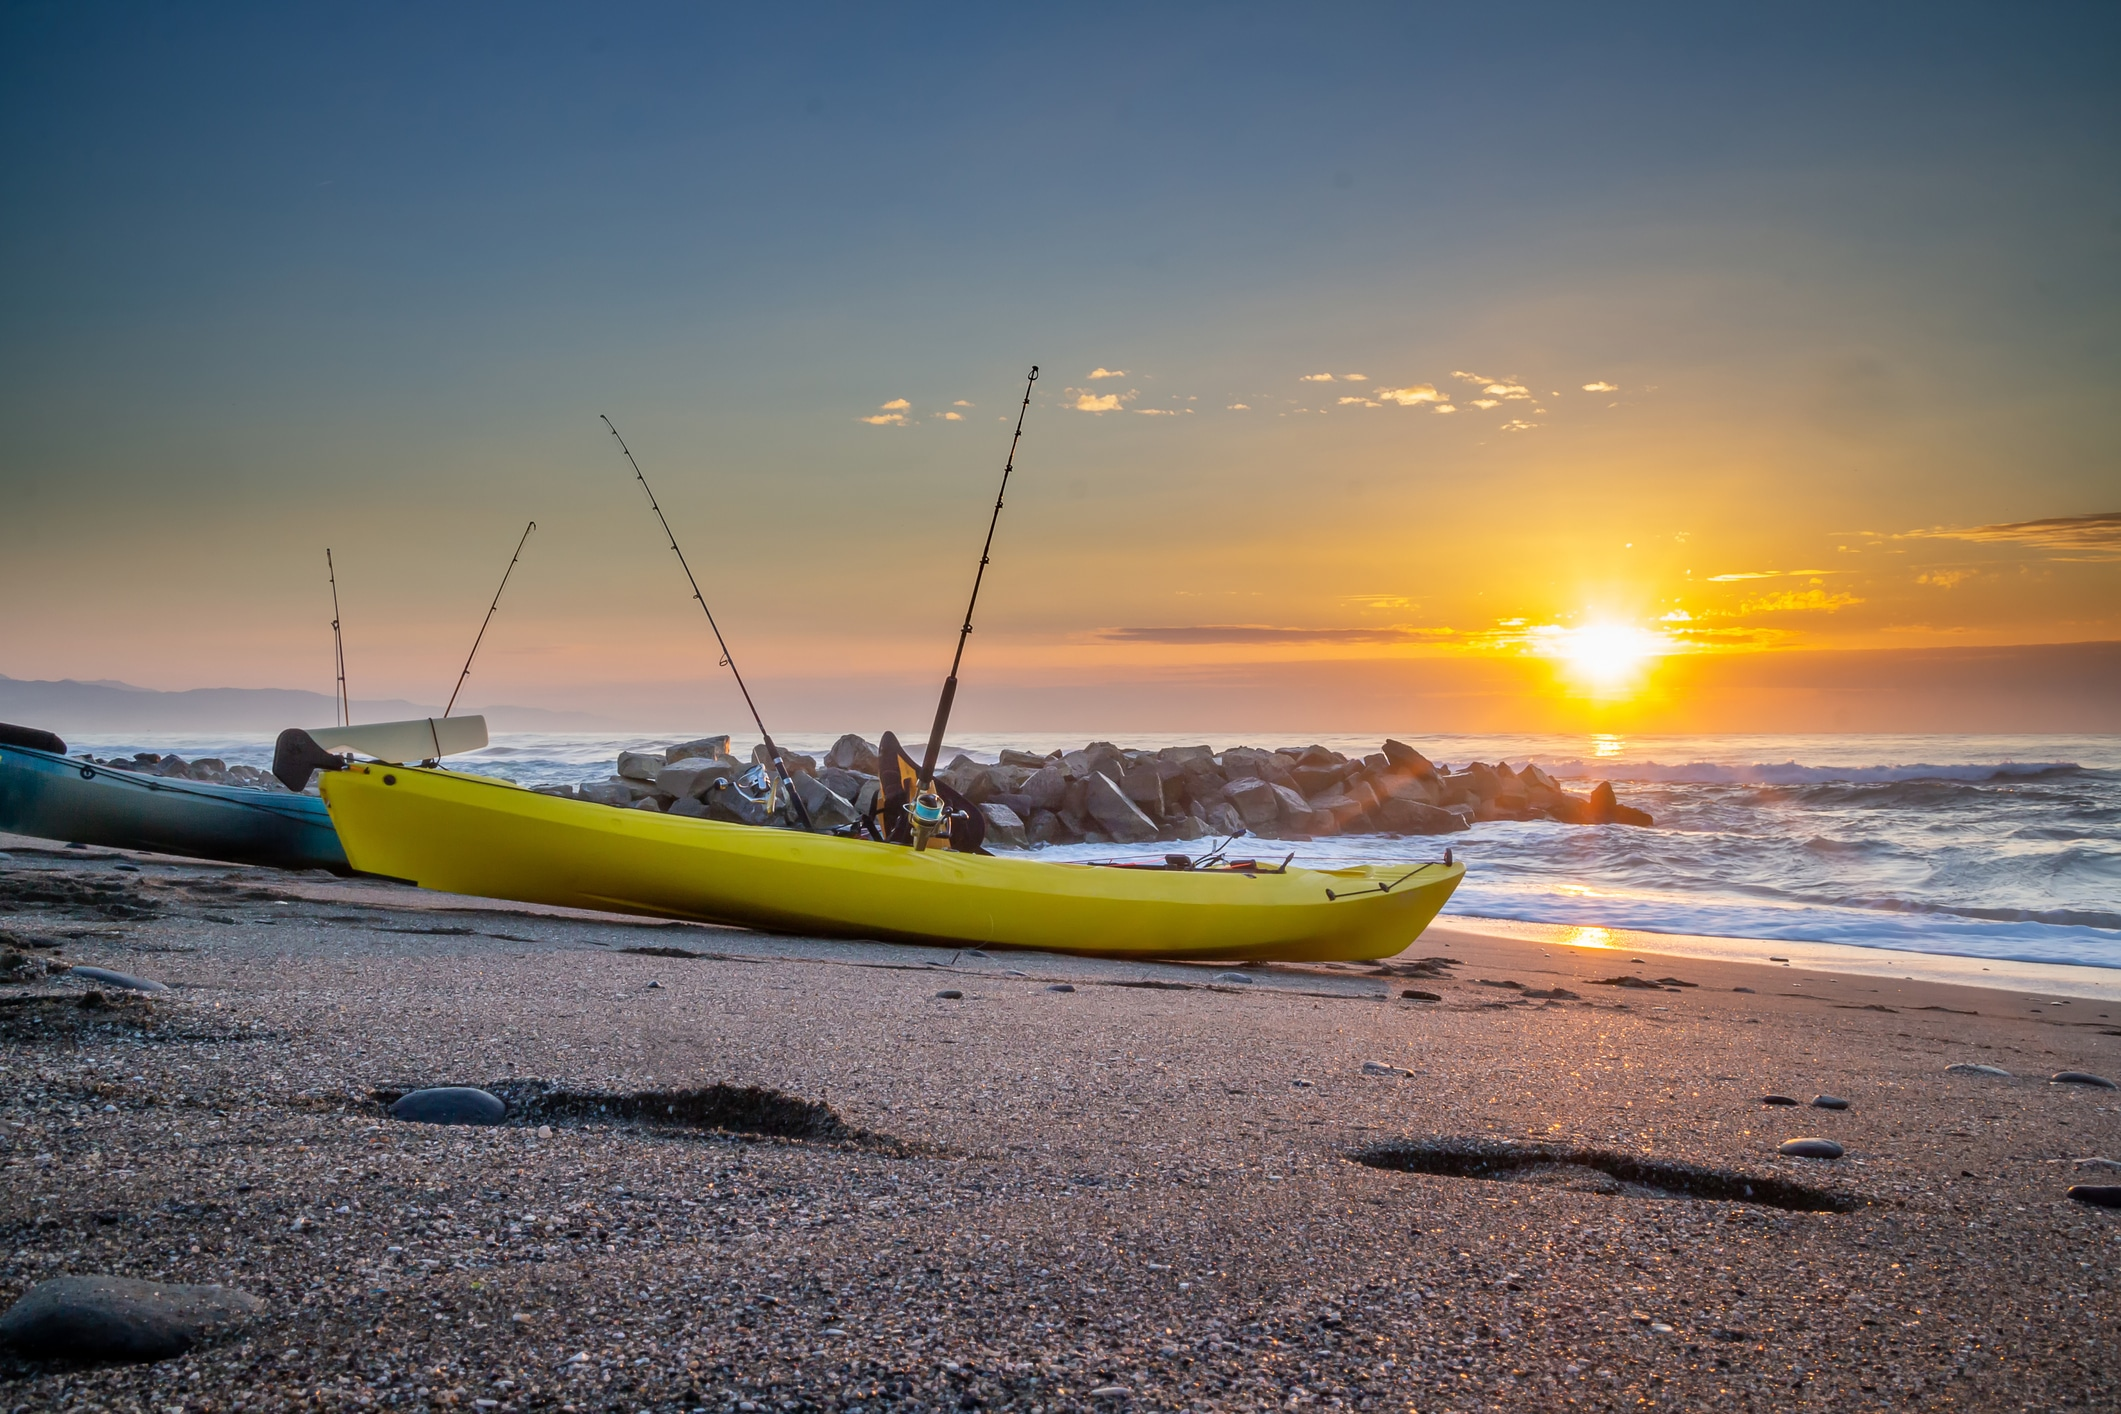 Two kayak on the beach waiting to fish - kayak fishing competition in the Mediterranean Sea - Marbella. Andalusia